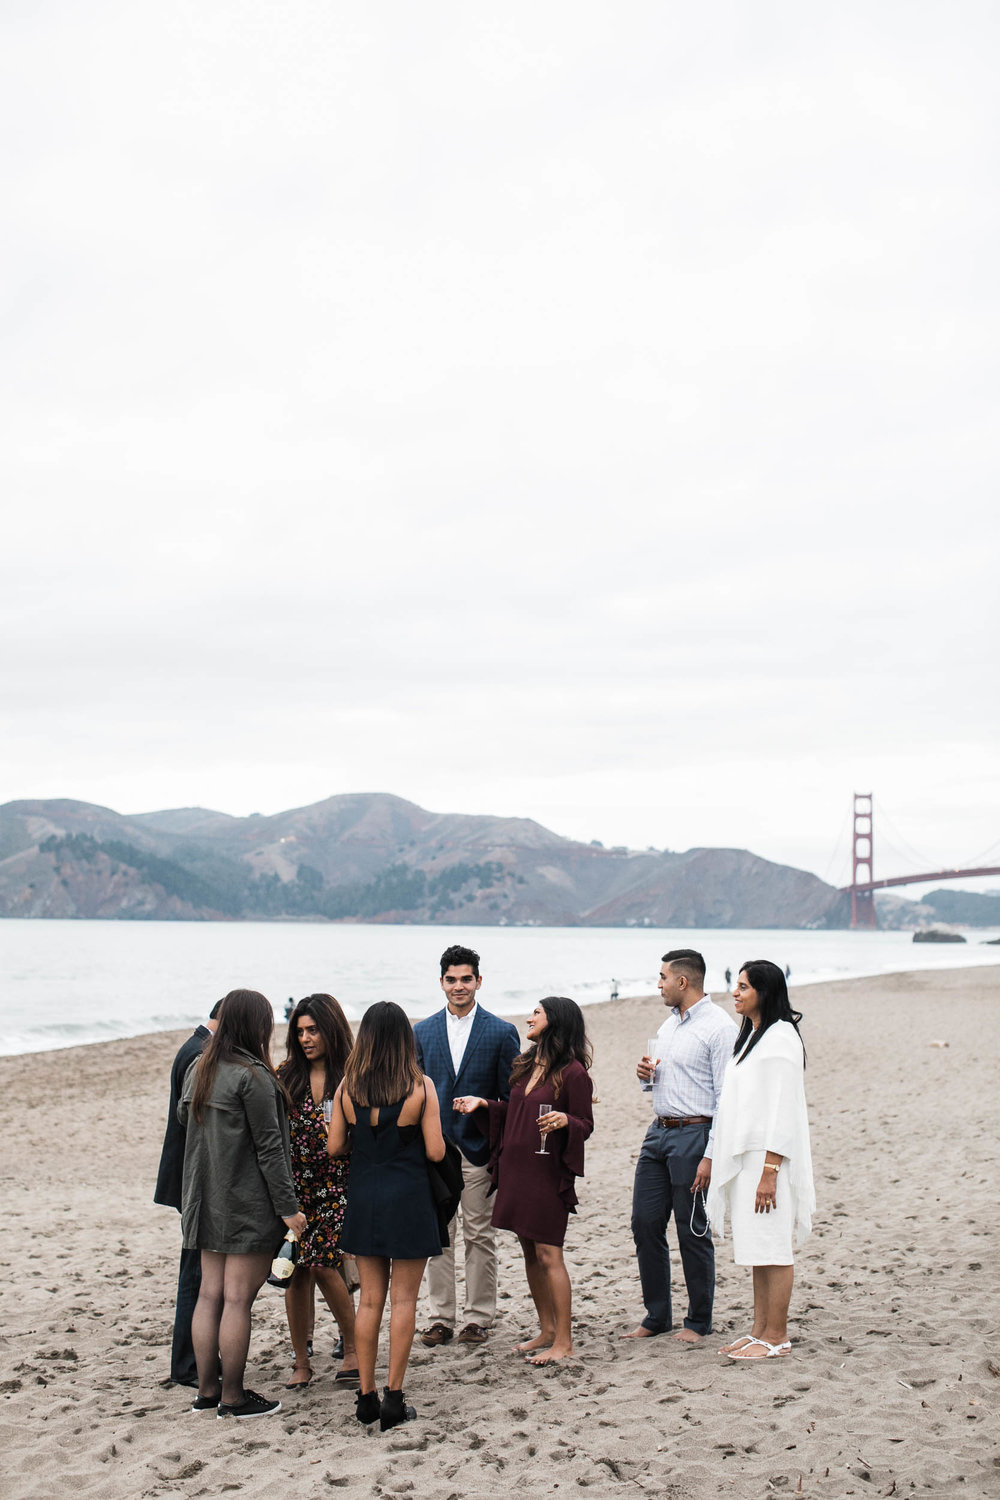 112017_D+S Proposal_Baker Beach_Buena Lane Photography_421.jpg